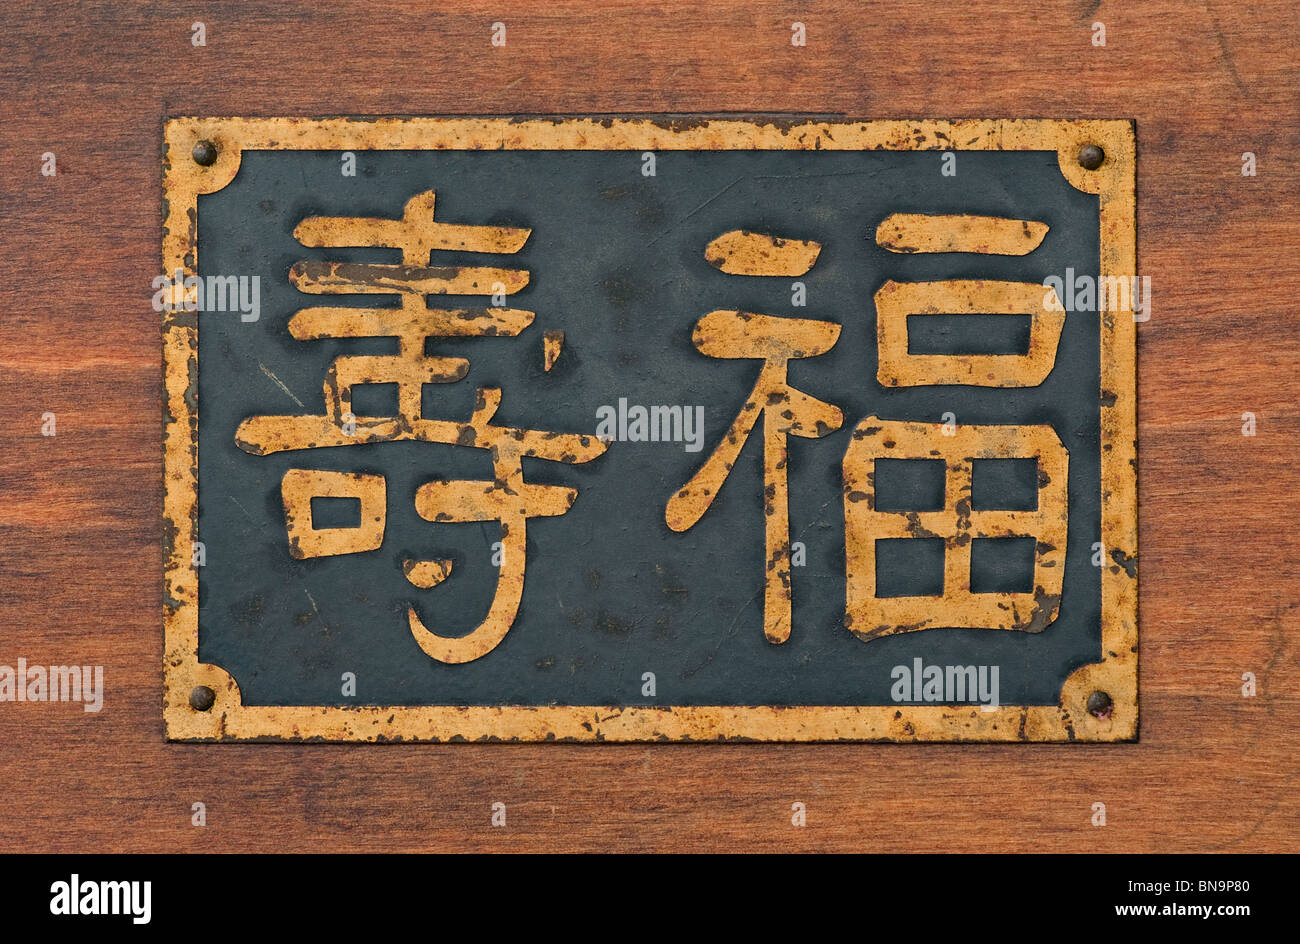 Old metal sign on wood with Chinese Characters that mean longevity, happiness and long life. - Stock Image